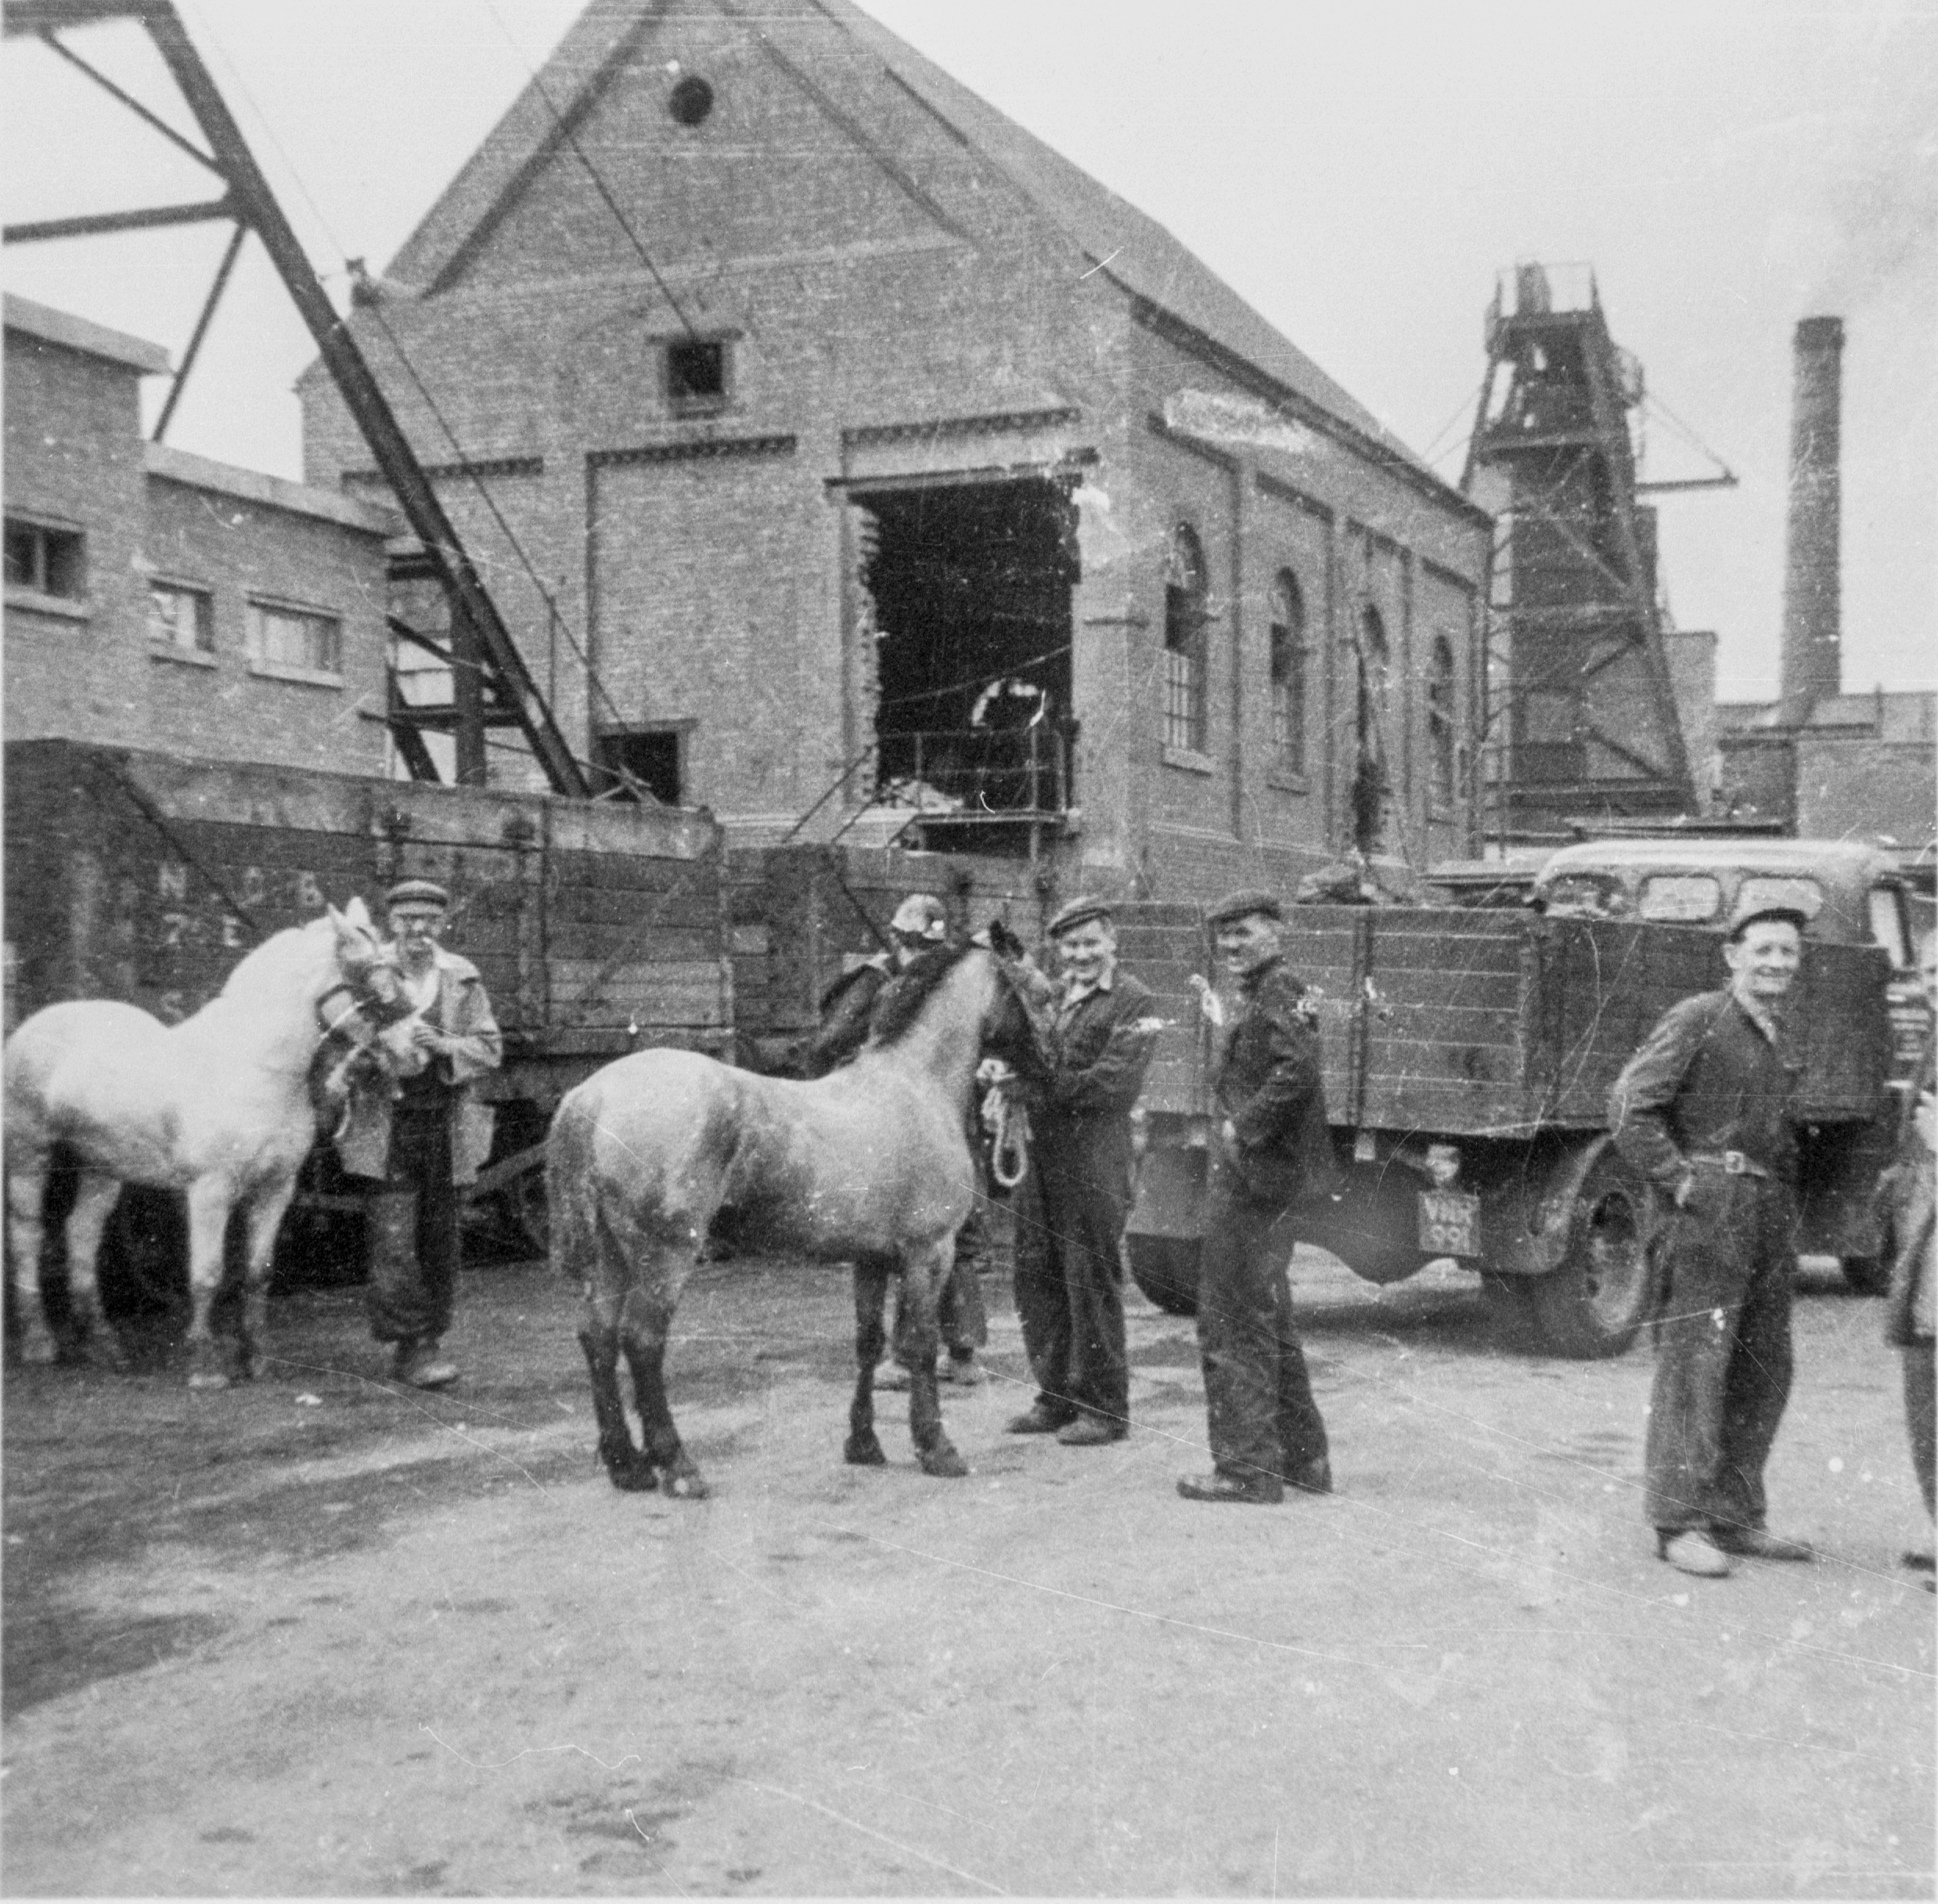 Snibston Colliery in a bygone era